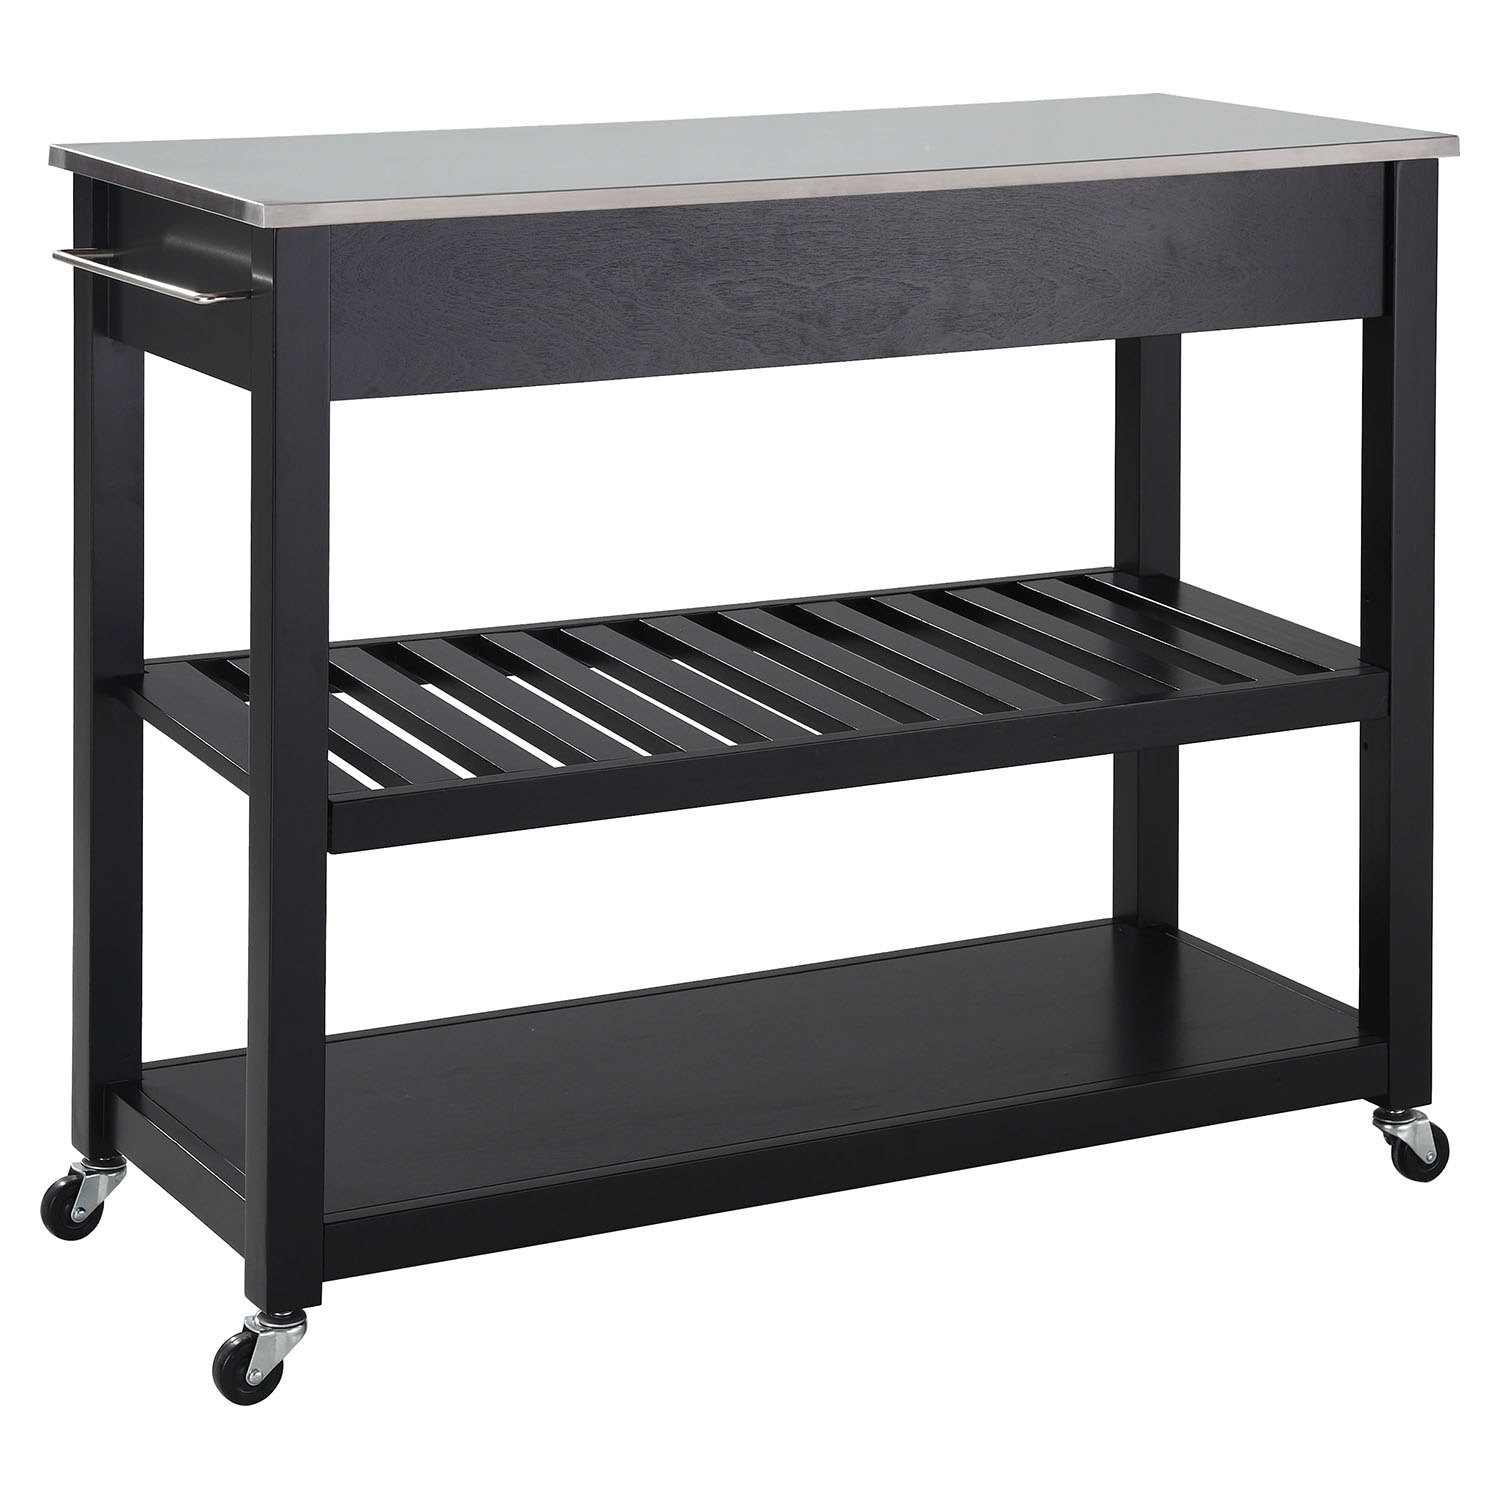 Stainless Steel Top Kitchen Island Cart  Optional Stool Storage